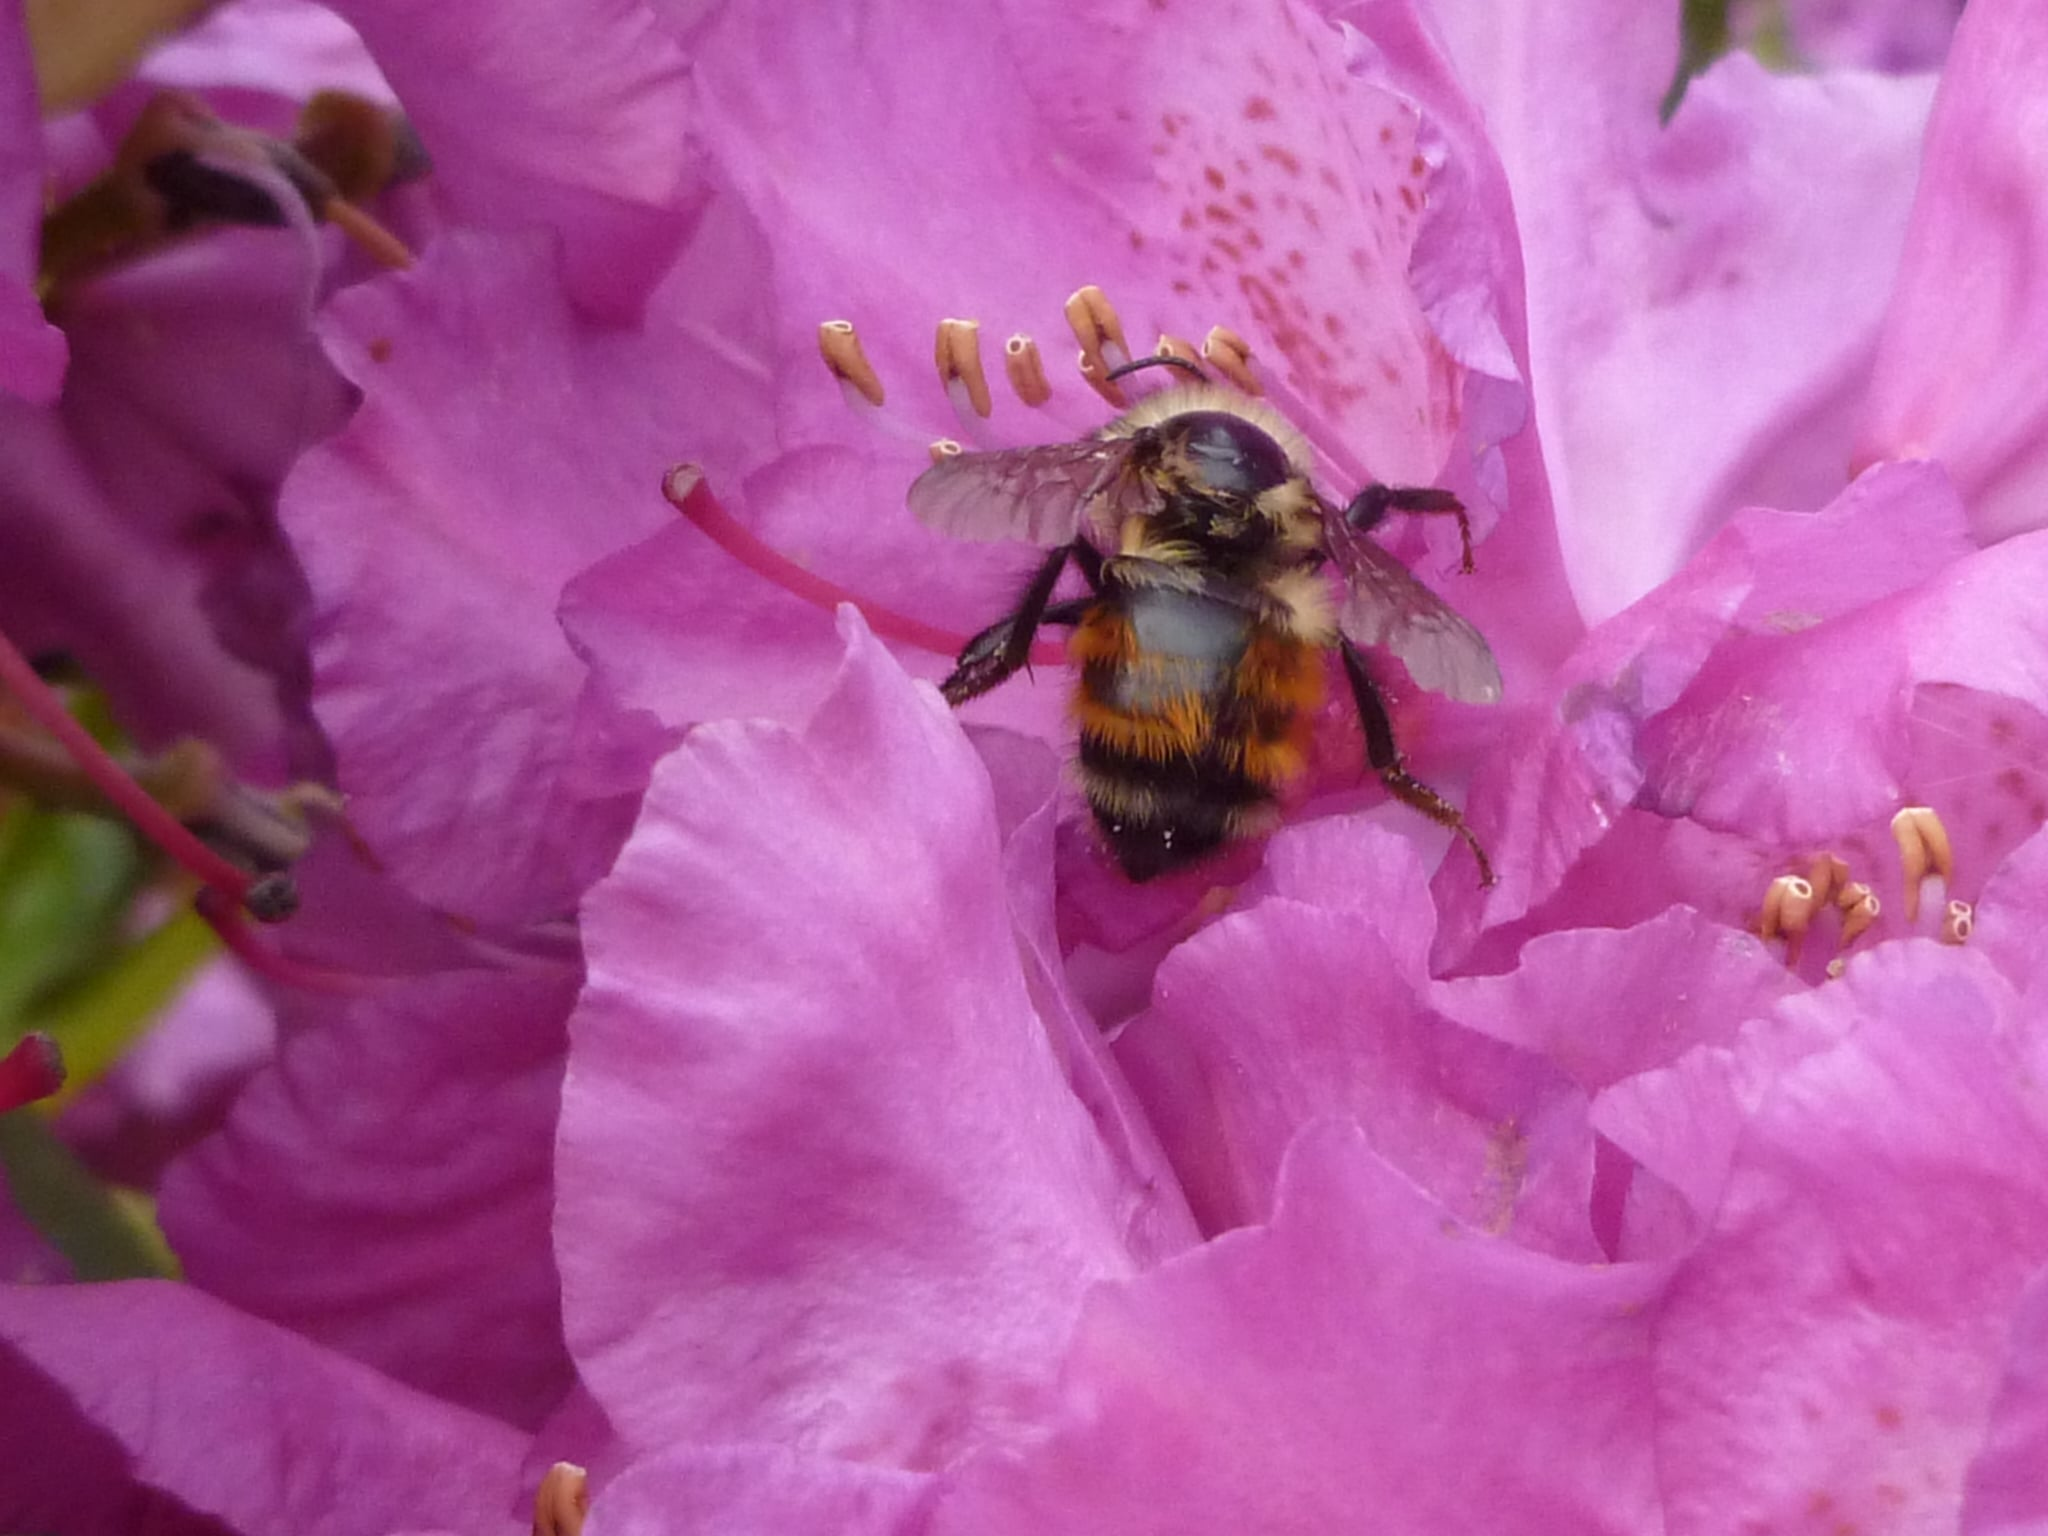 busy bee gardening among the backyard rhododendrons - May 2018. Larry Juday